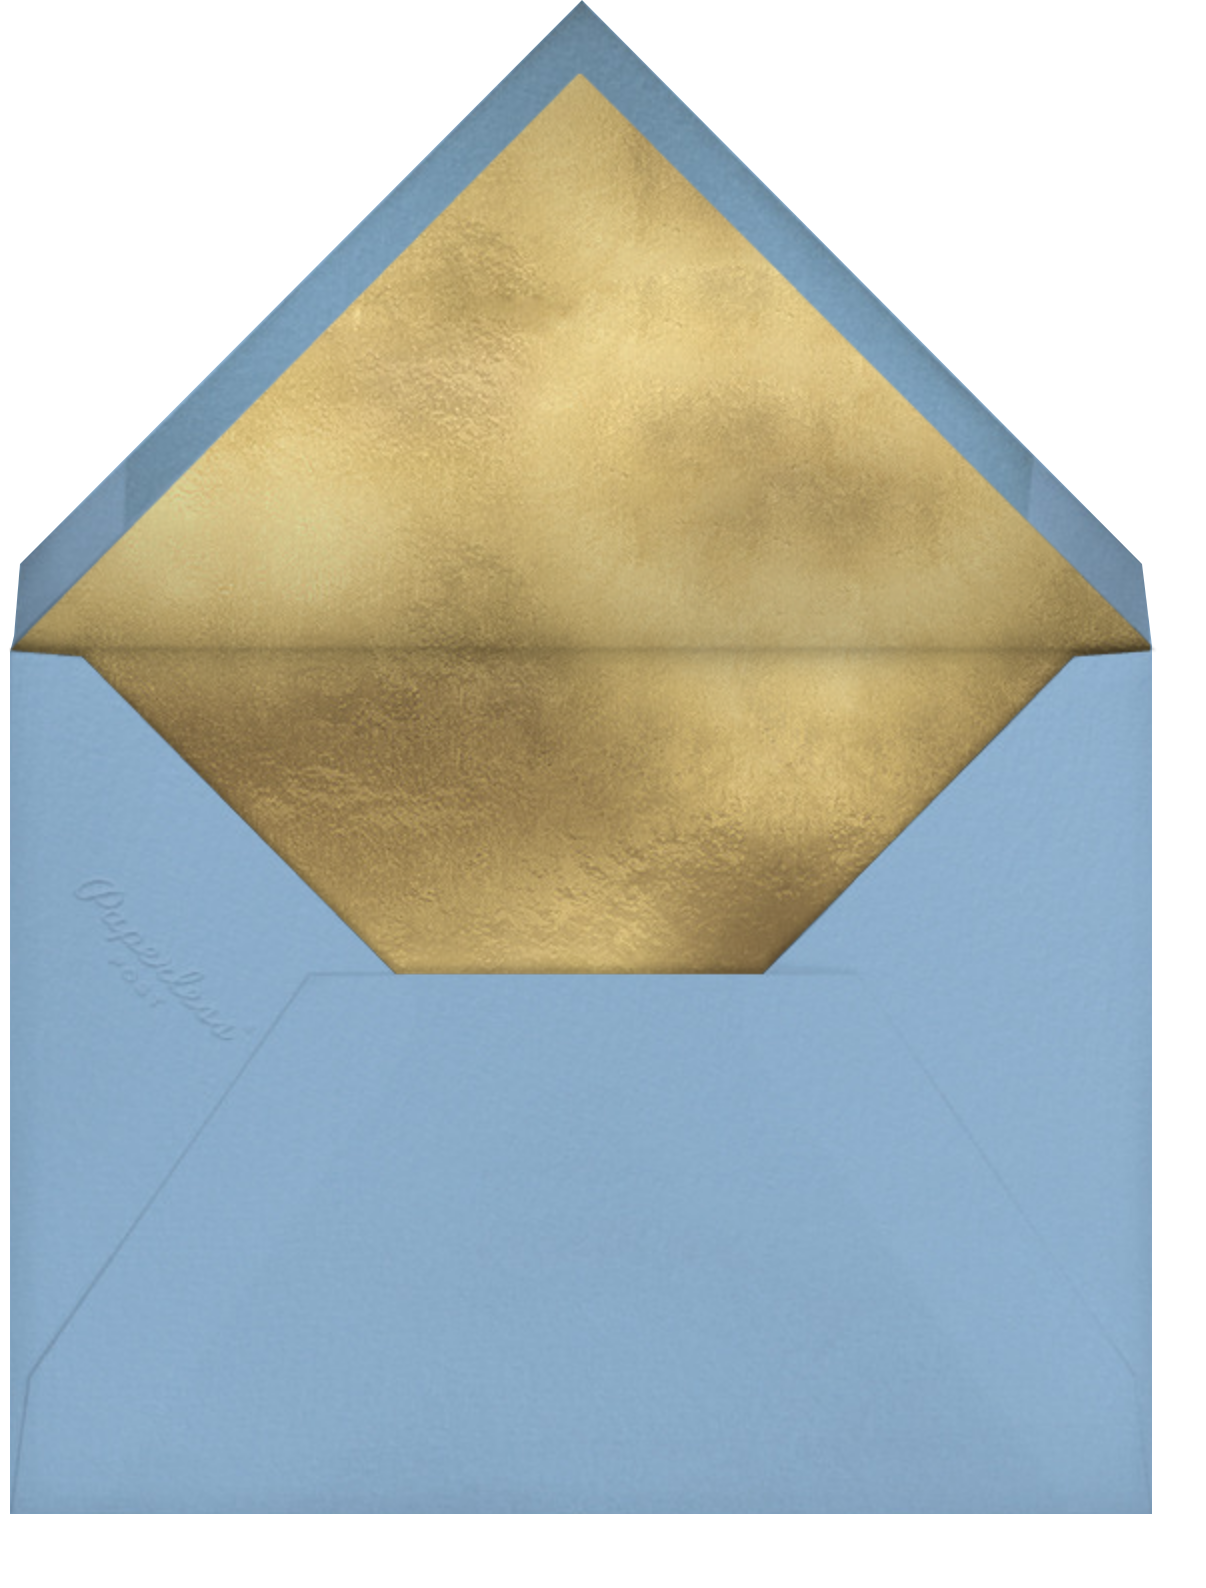 Chilly Cactus - Blue - Paperless Post - Christmas - envelope back